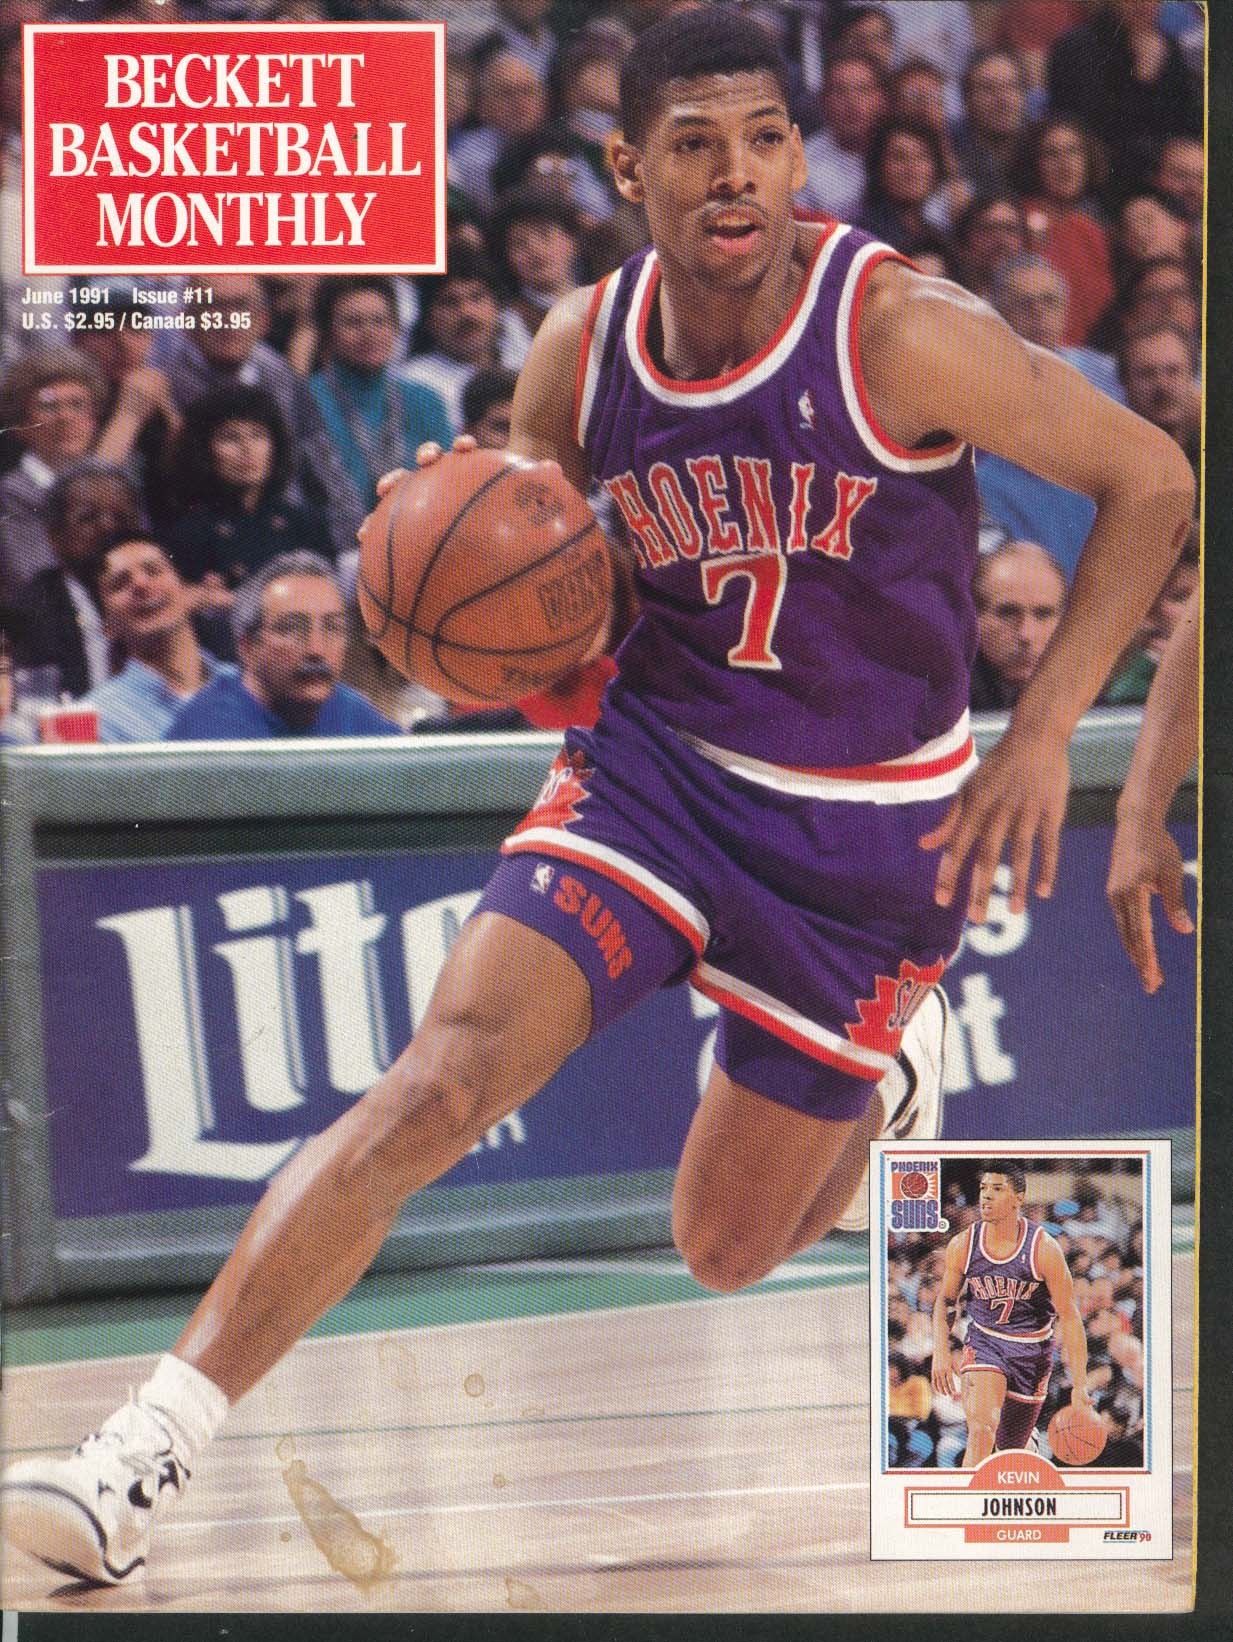 BECKETT BASKETBALL MONTHLY Kevin Johnson Joe Dumars Bernard King 6 1991